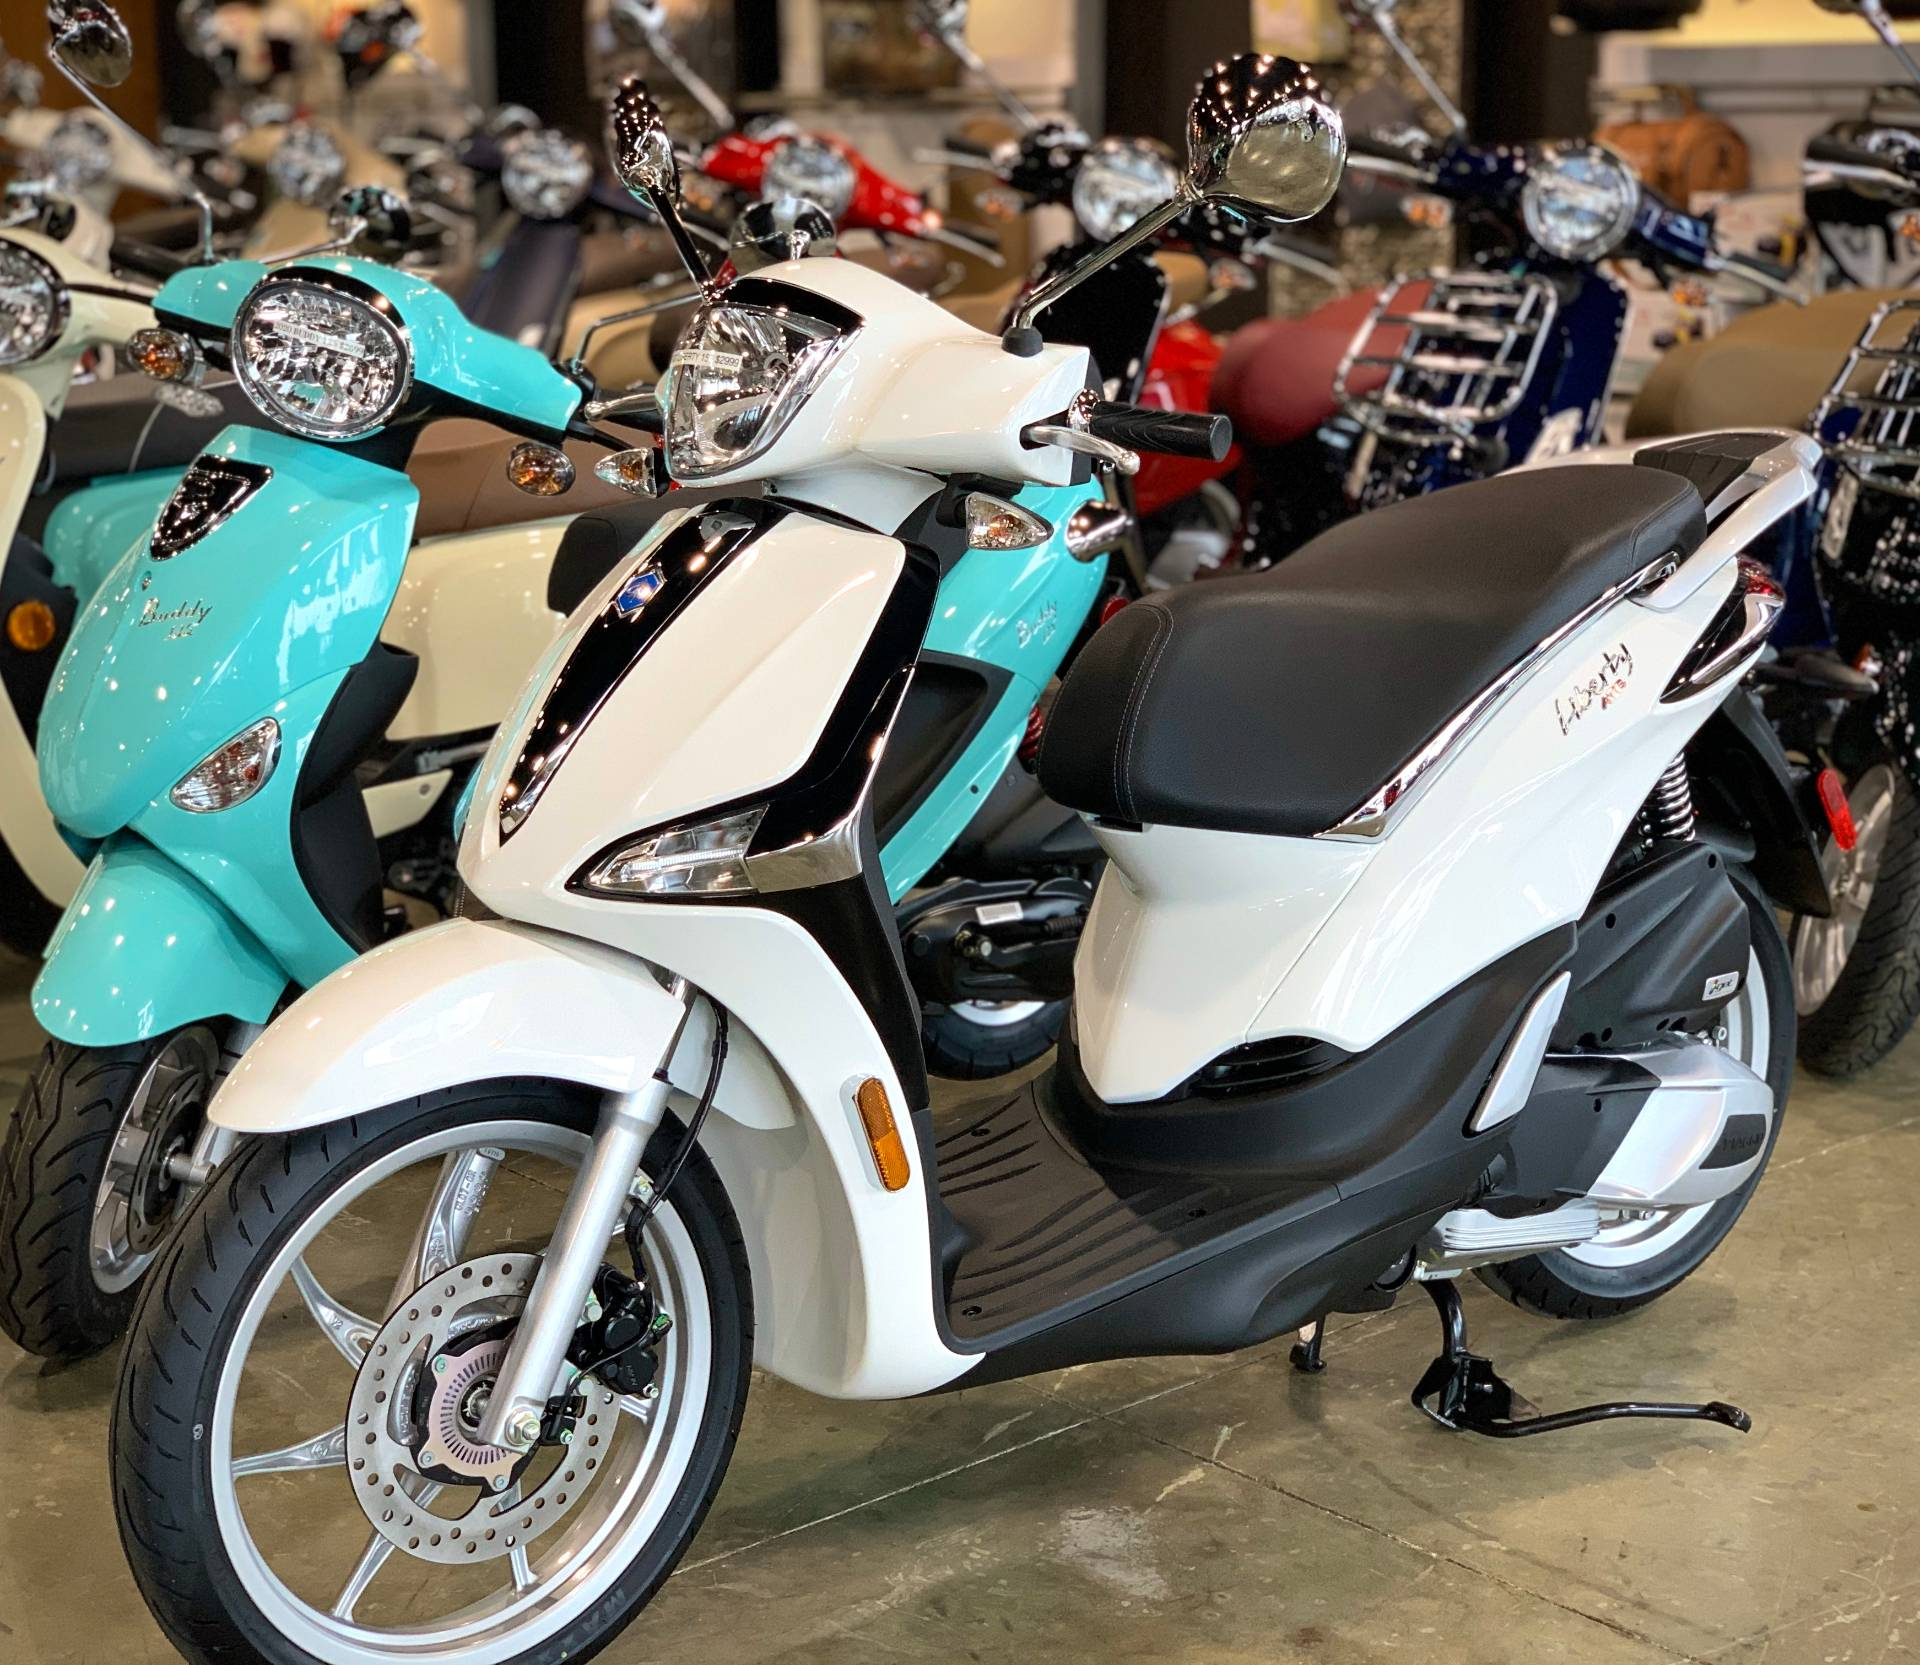 2020 Piaggio Liberty 150 in Plano, Texas - Photo 1